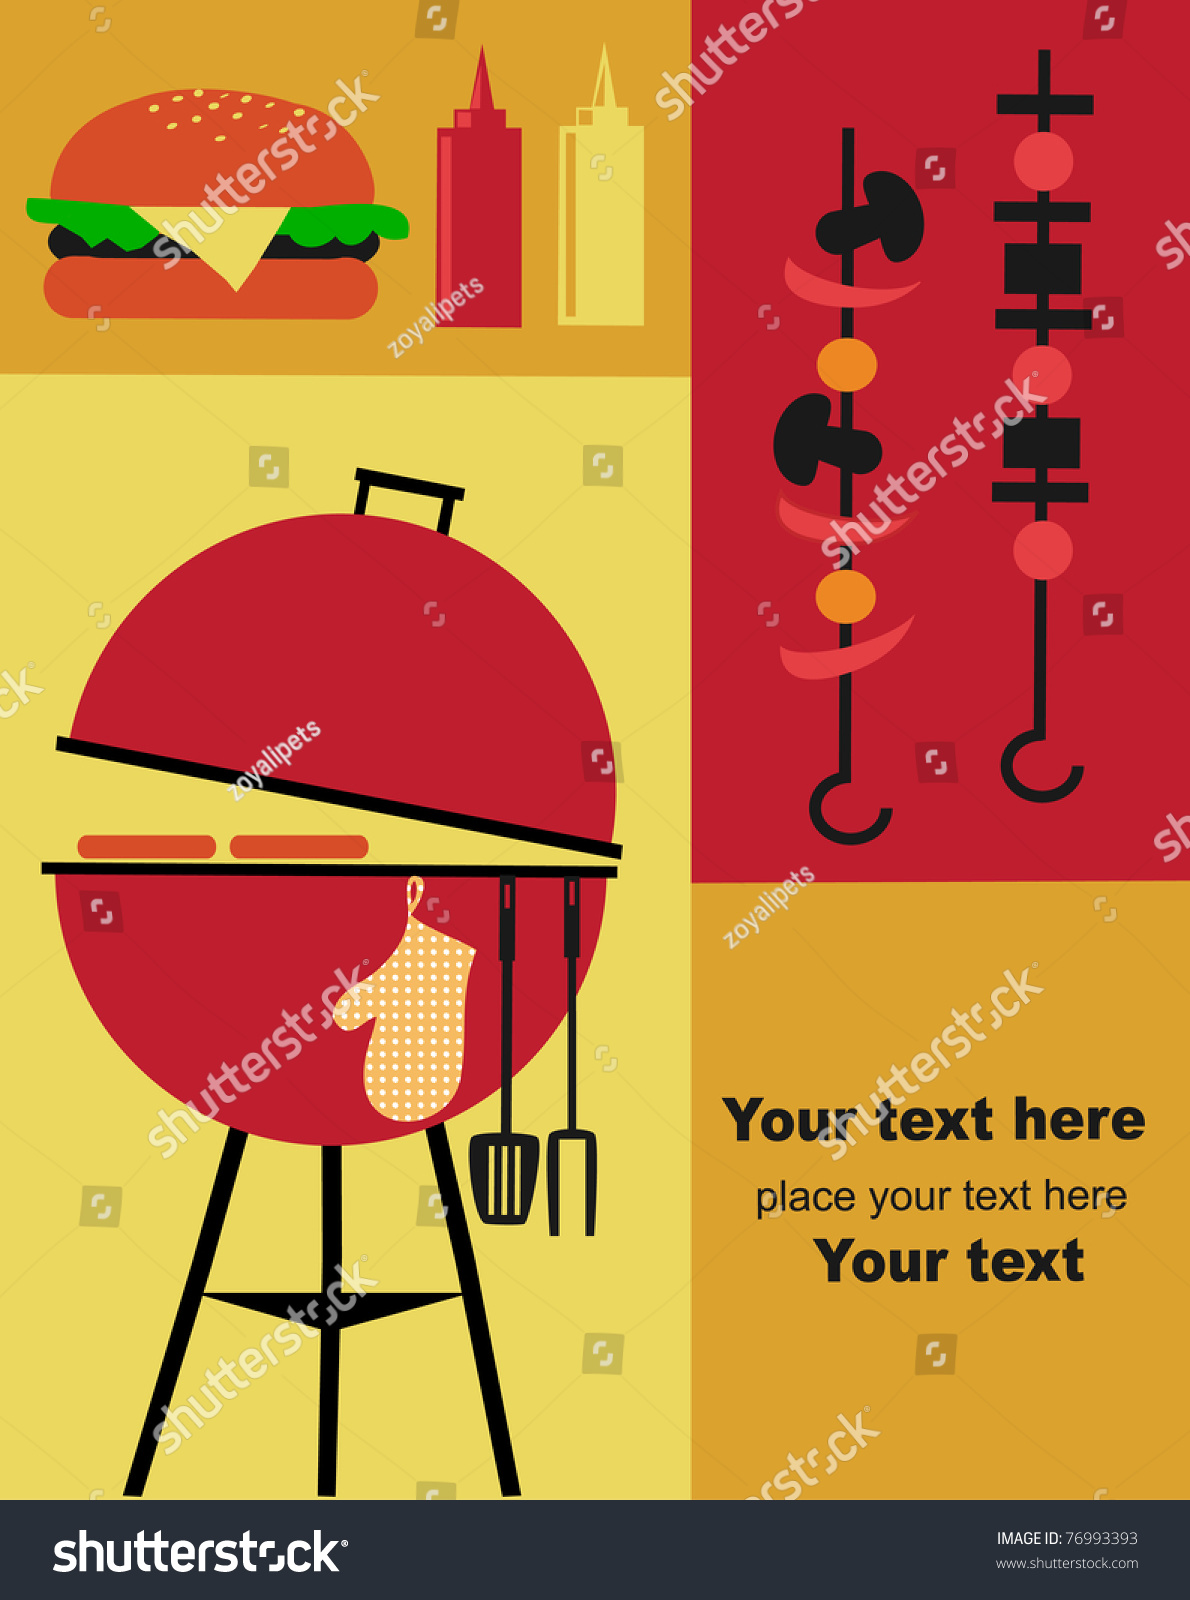 Royalty Free Bbq Party Invitation Template 76993393 Stock Photo